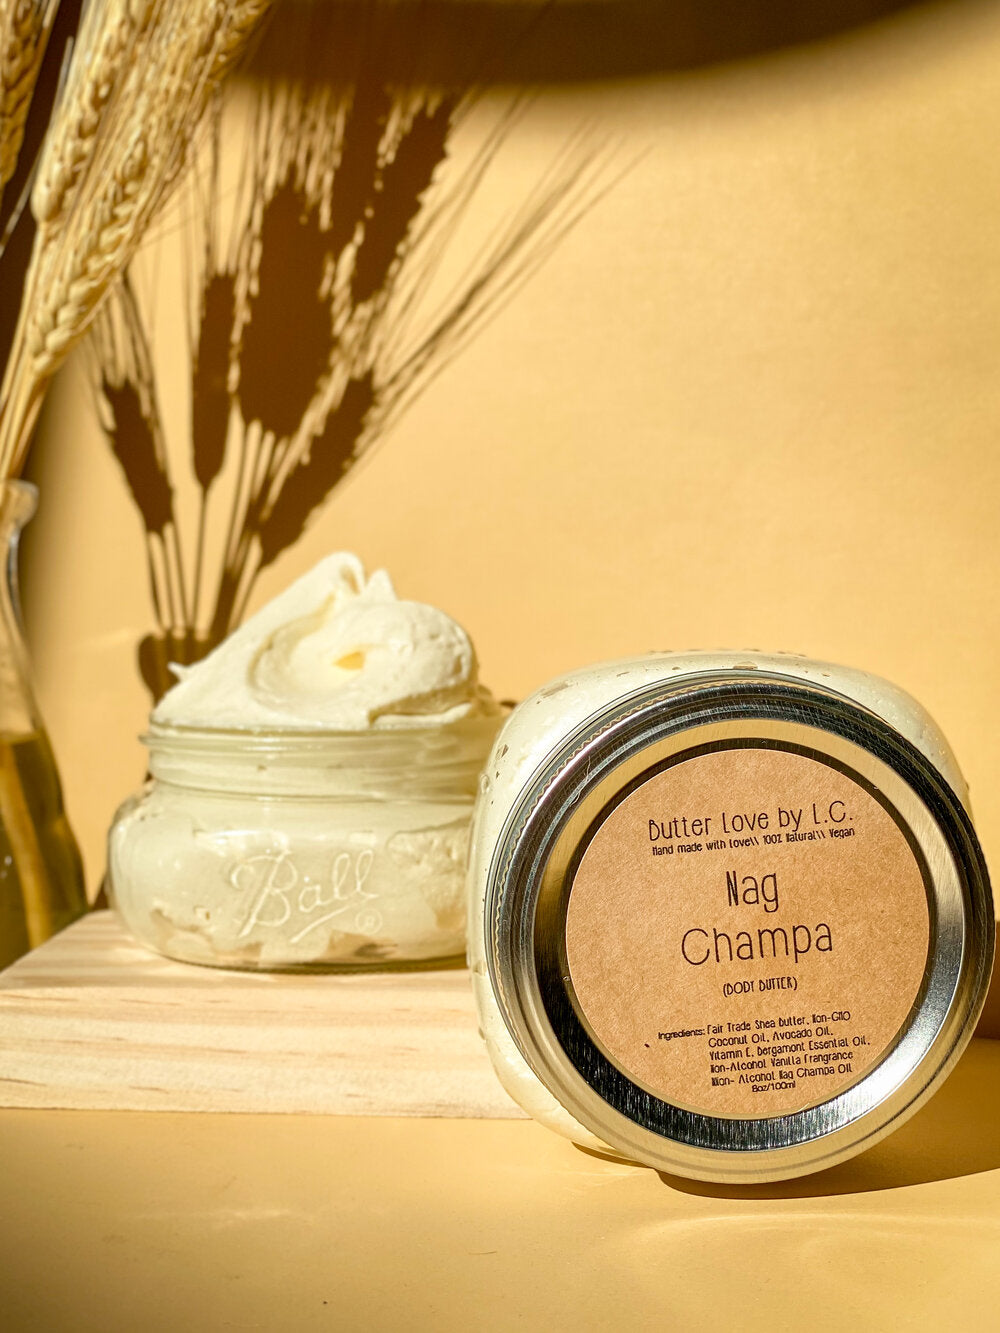 Butter Love By L.C. Nag Champa Body Butter